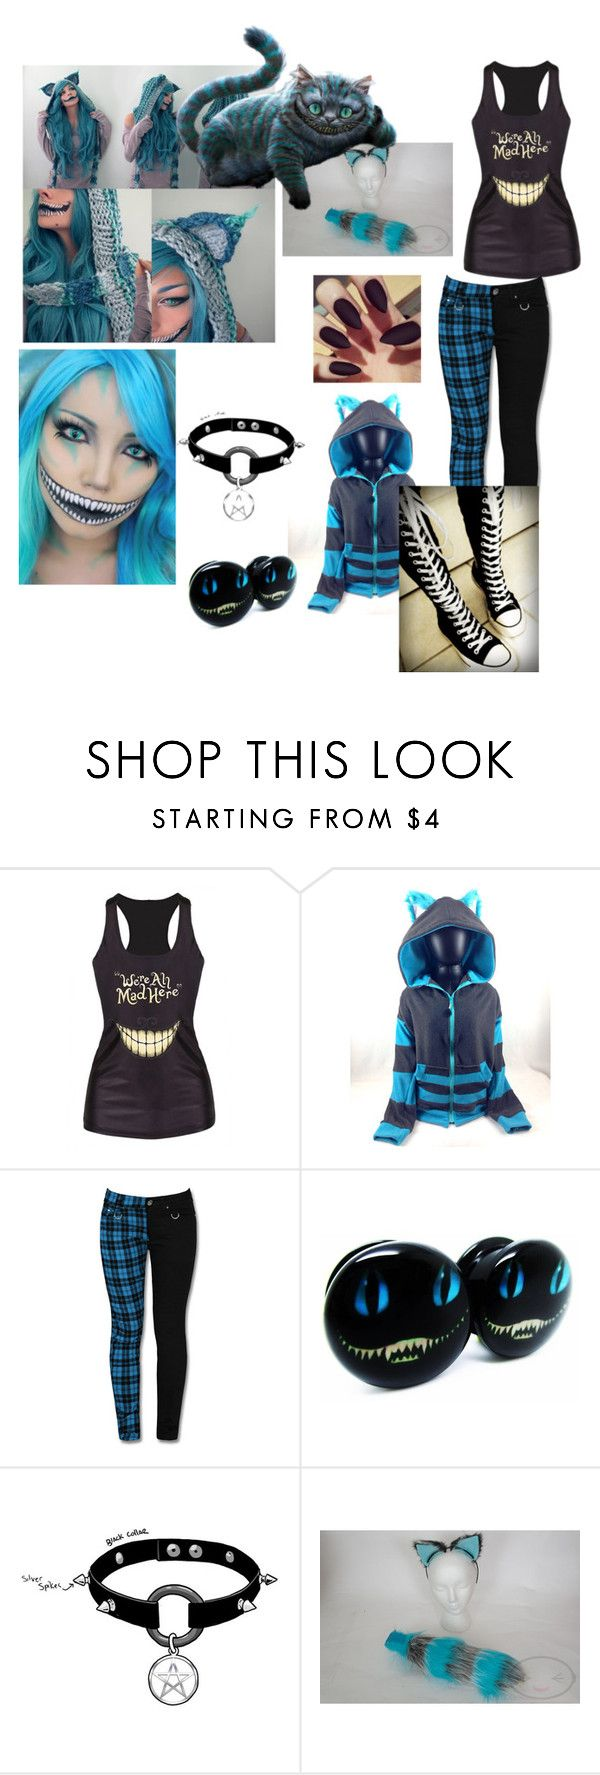 cheshire cat costume by mattie howard liked on polyvore - Cat Costume Ideas Halloween